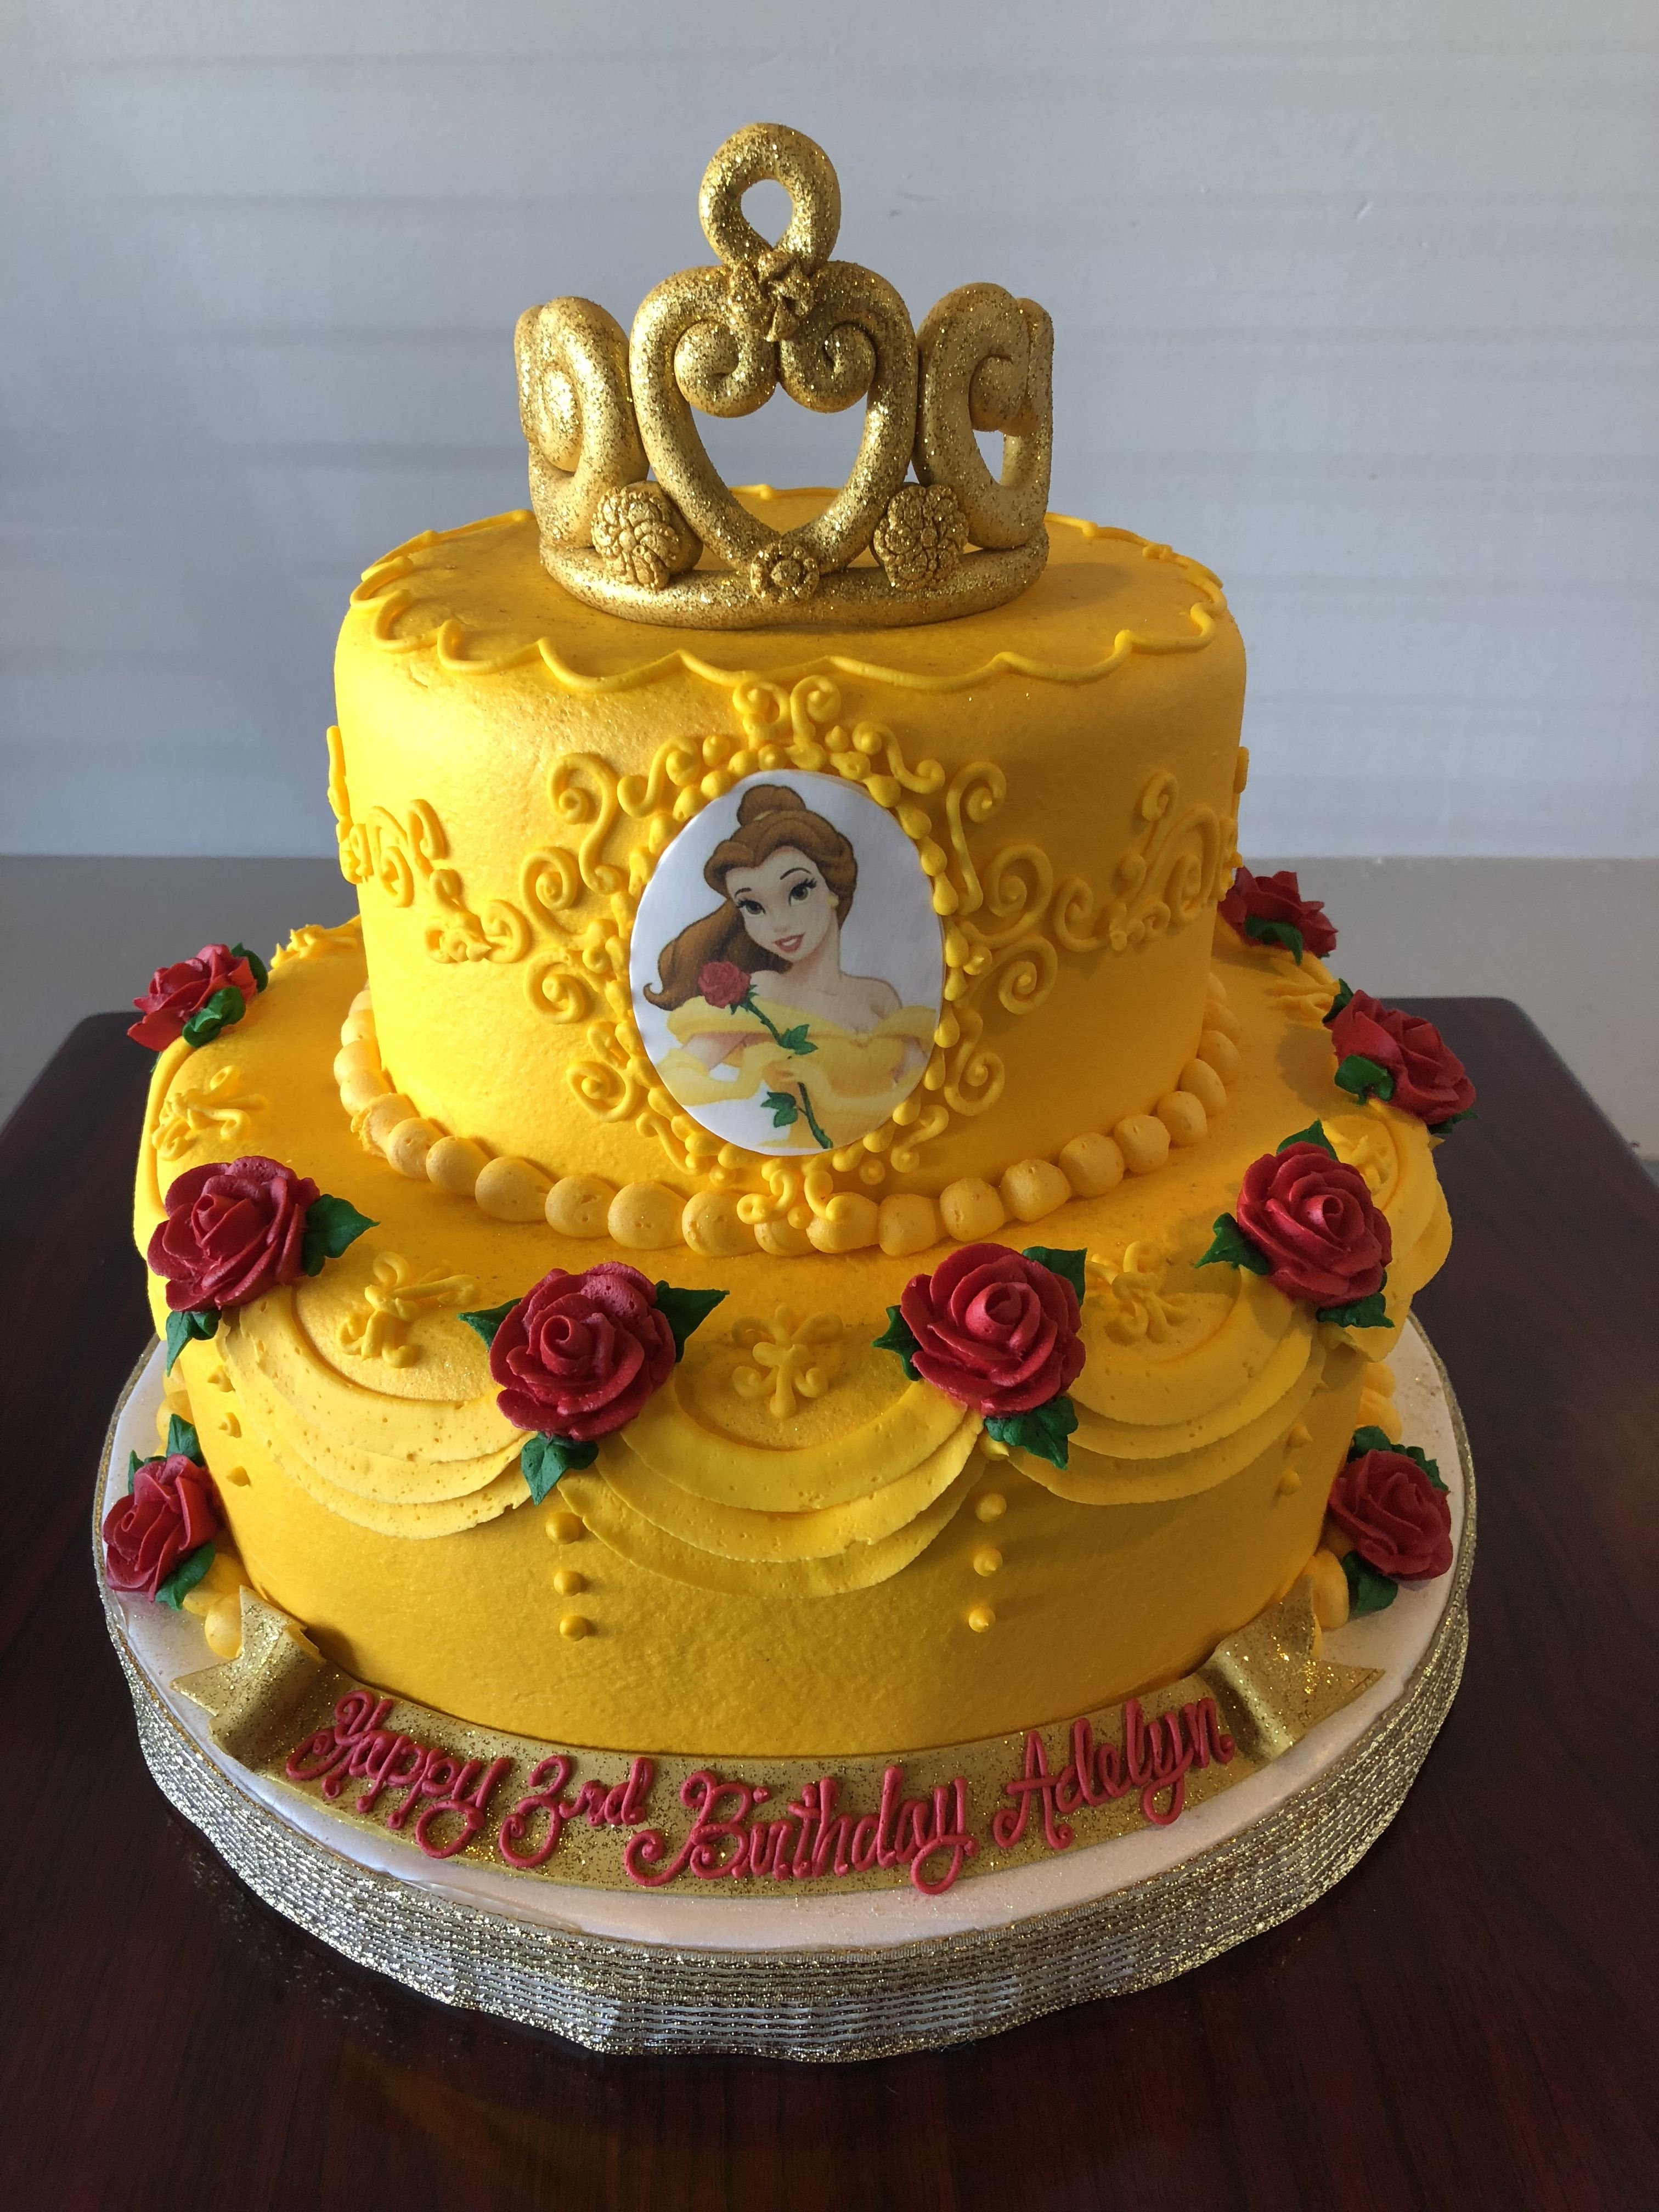 Swell Disney Belle Cake Adrienne Co With Images Belle Birthday Personalised Birthday Cards Paralily Jamesorg